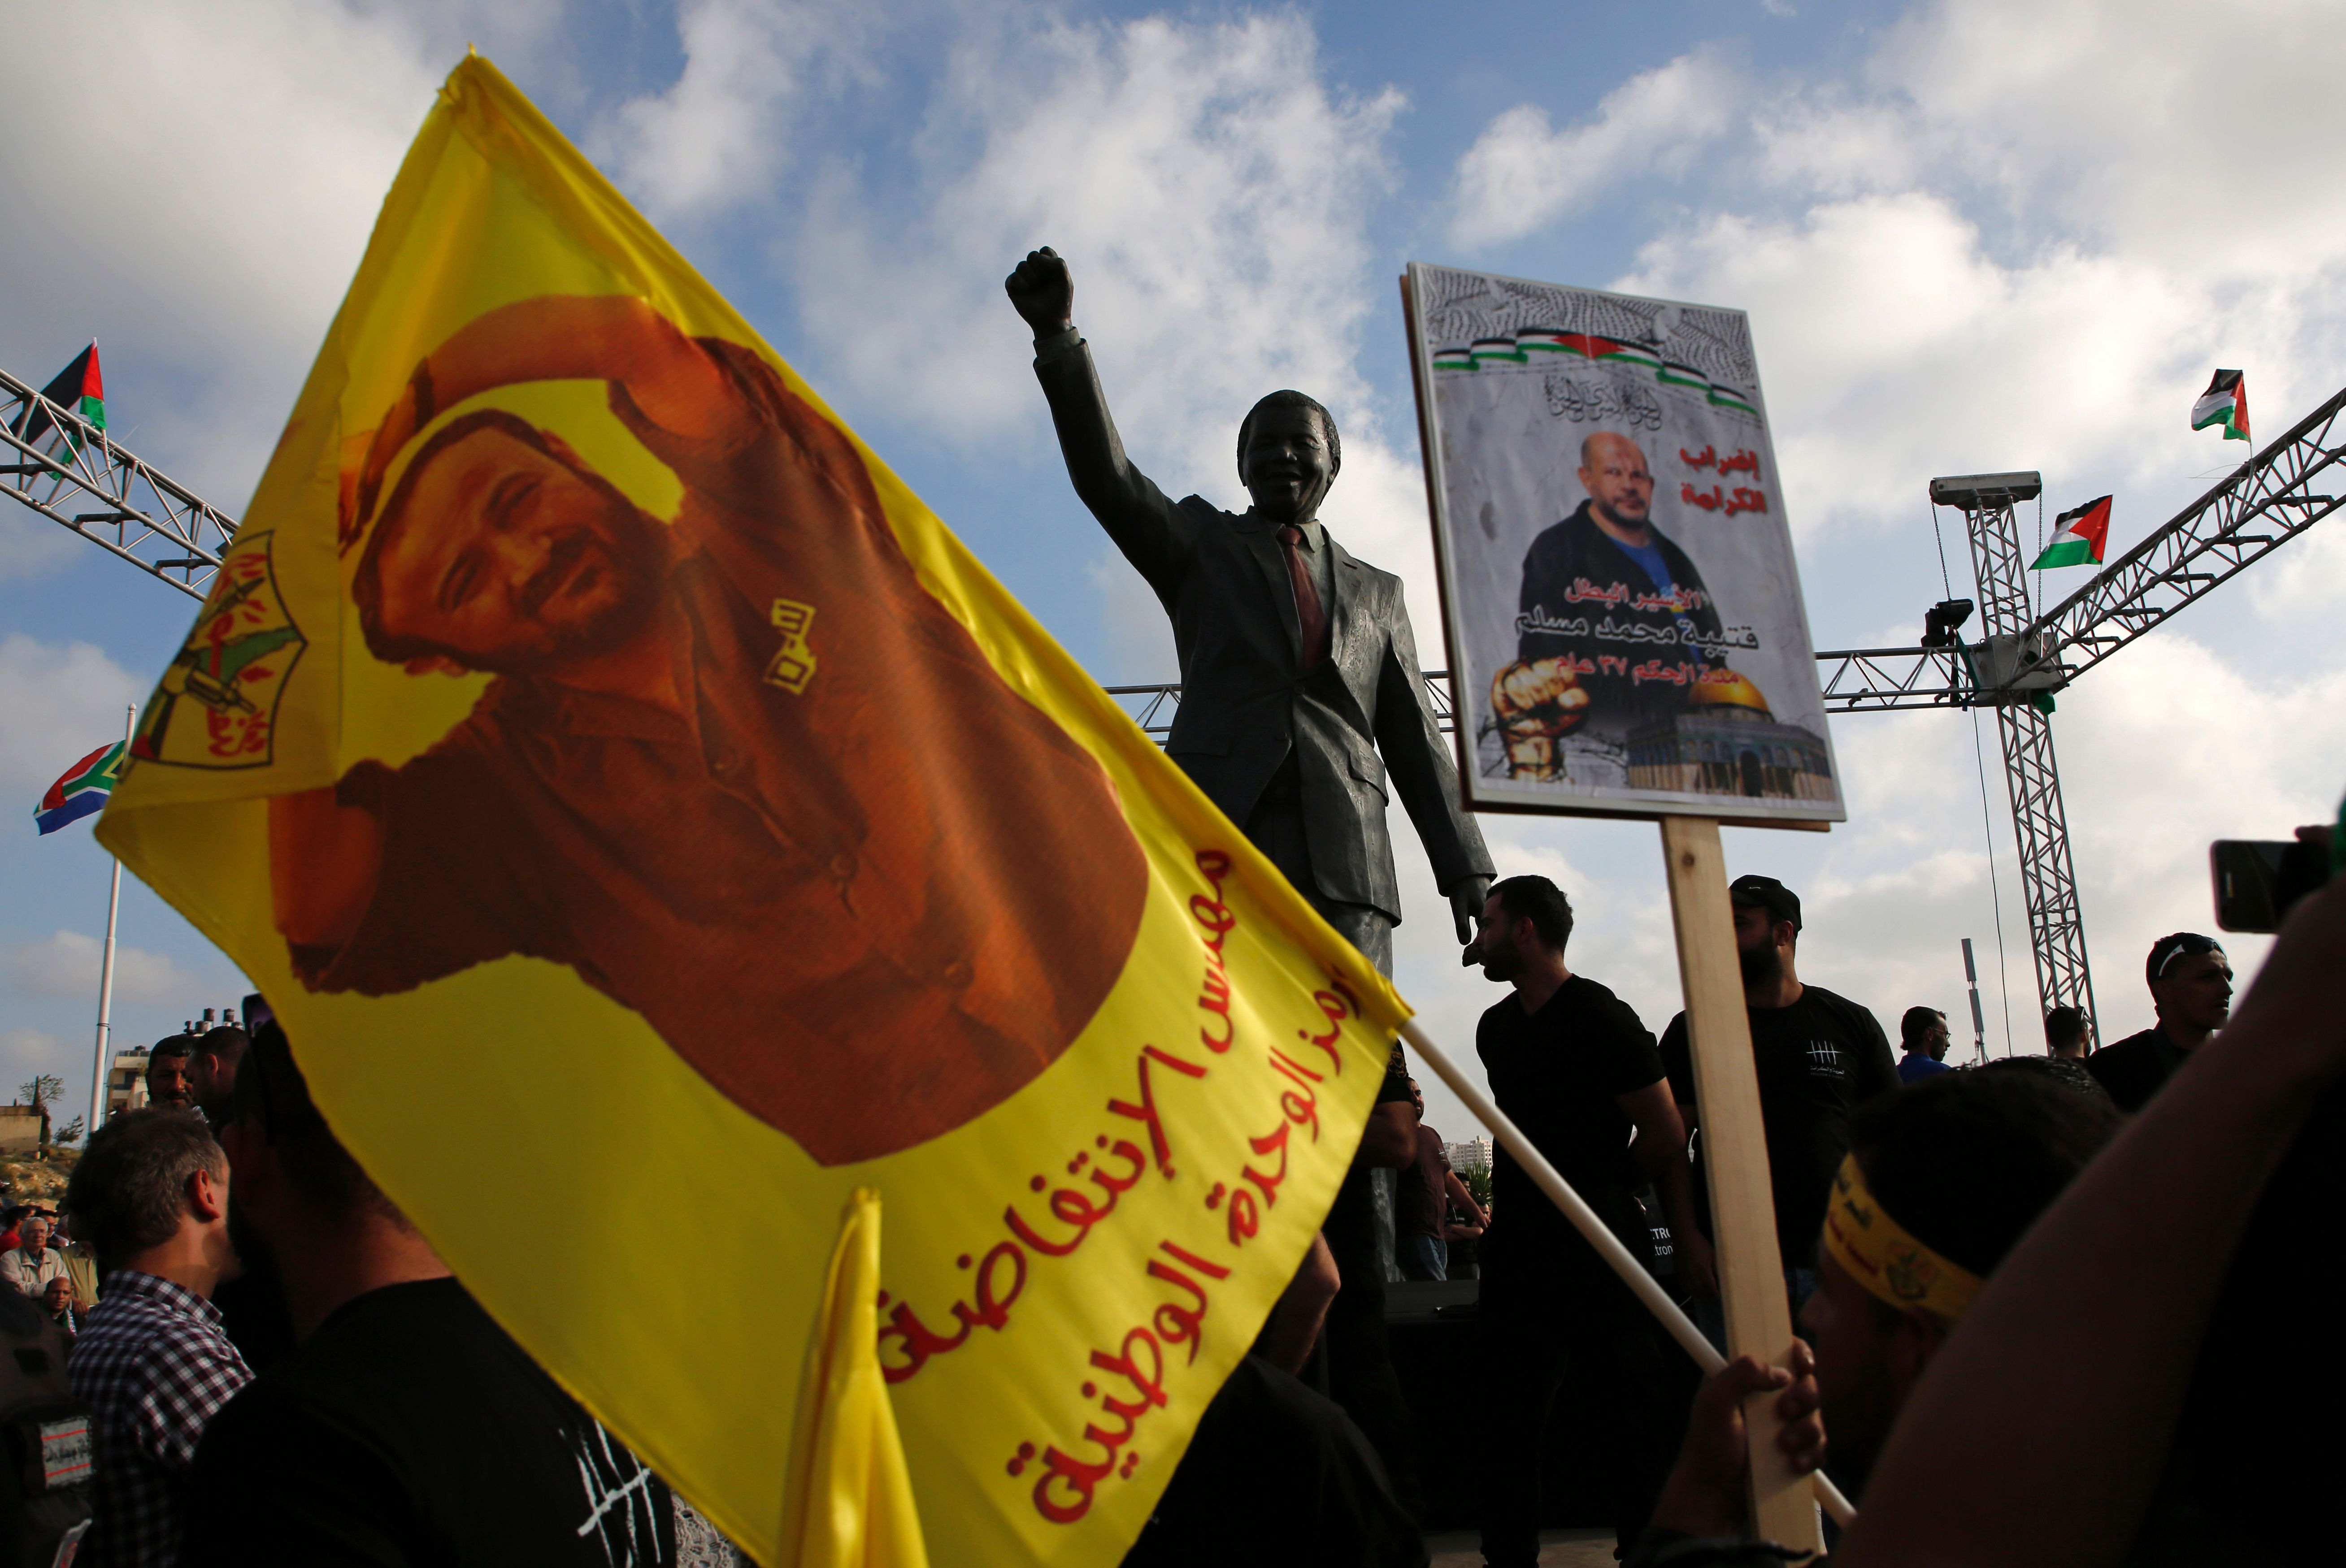 TOPSHOT - Protesters hold up portraits of Palestinian leader and prominent prisoner Marwan Barghouti in front of a statue of Nelson Mandela in the West Bank city of Ramallah on May 3, 2017, during a demonstration in support of Palestinian prisoners on hunger strike in Israeli jails. / AFP PHOTO / ABBAS MOMANI / TT / kod 444